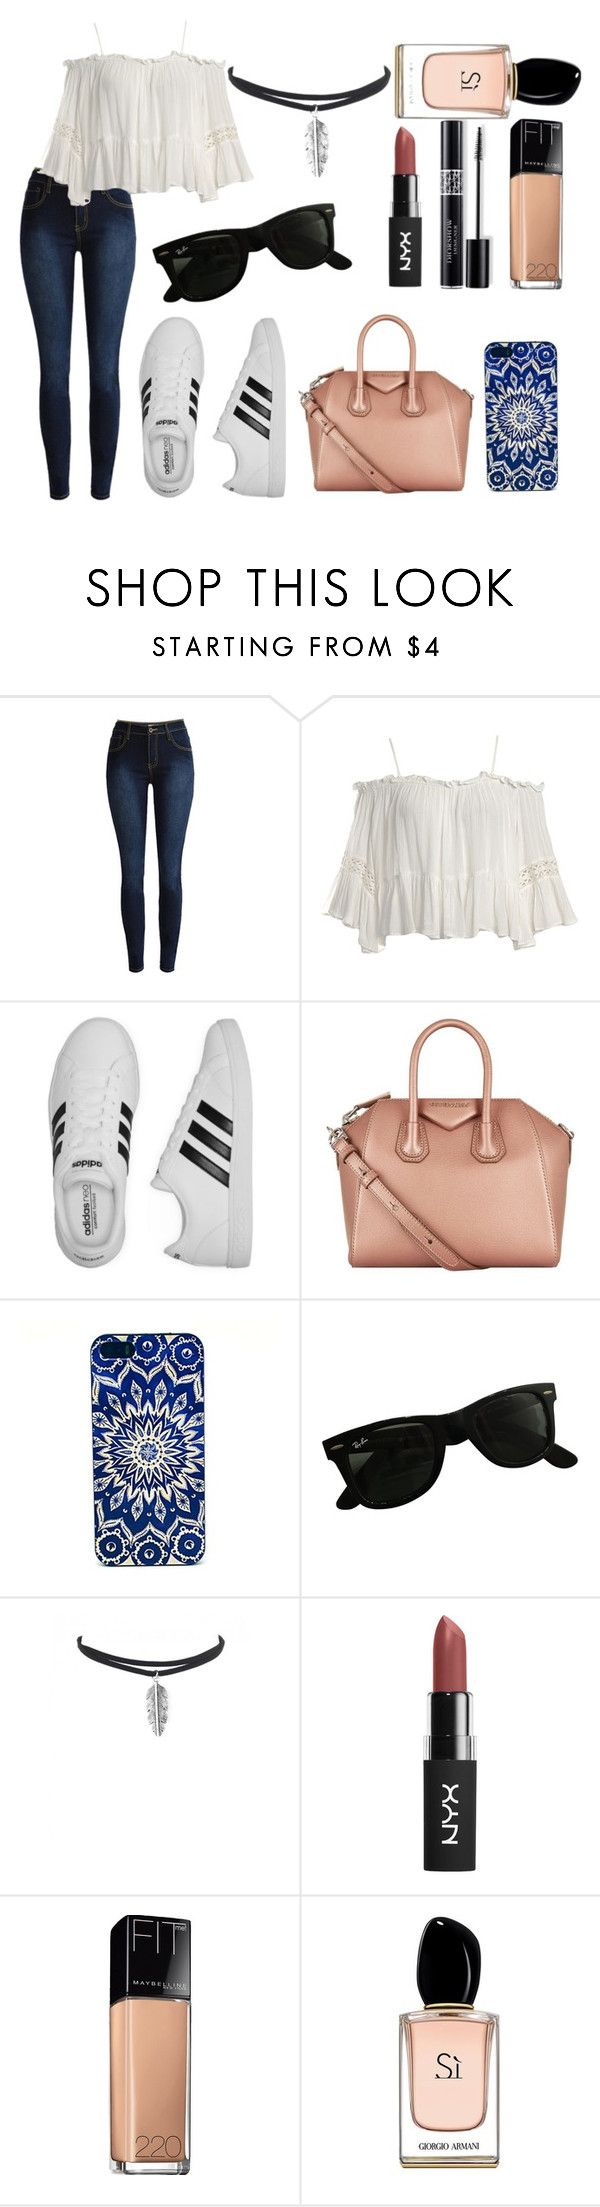 #166 by potato-cupcake on Polyvore featuring Sans Souci, adidas, Givenchy, Ray-Ban, Maybelline, Armani Beauty and Christian Dior